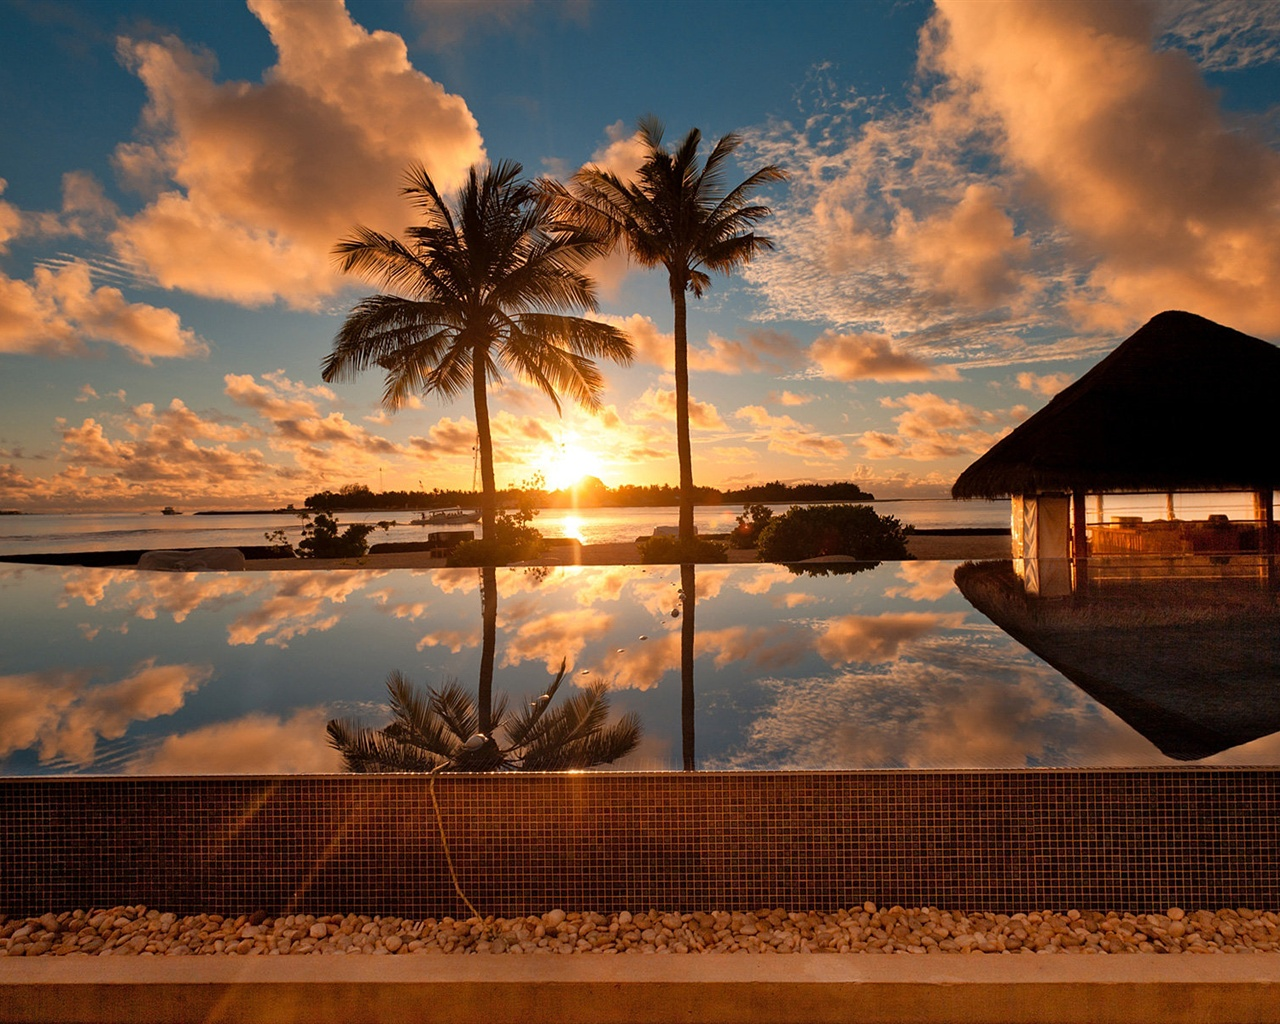 wallpaper tropical ocean scenery, palm tree, house, dusk 1920x1200